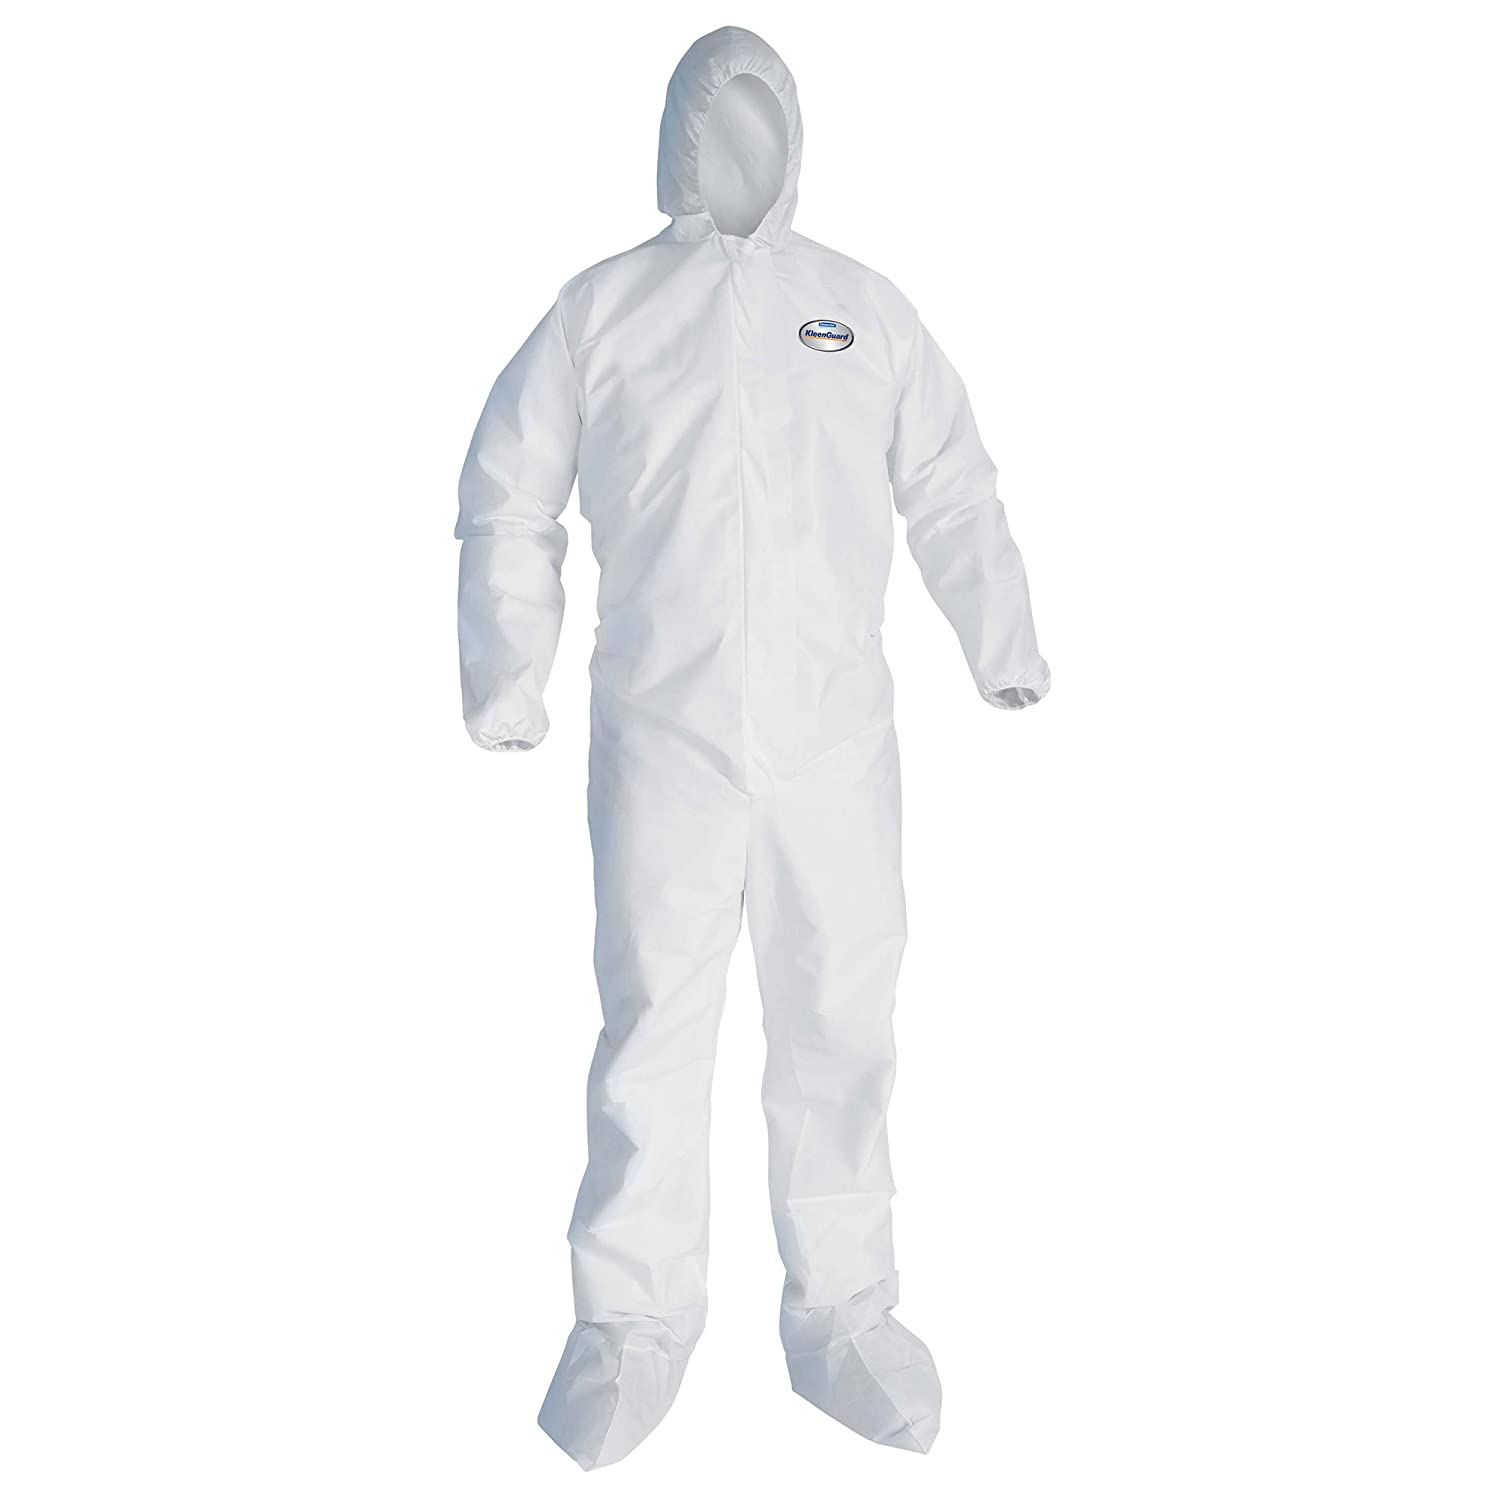 Amazon.com: Kleenguard A10 Light Duty Coveralls (10606), Zip Front, Elastic  Wrists, Hood, Boots, Breathable Material, White, Large, 25 / Case:  Industrial & ...